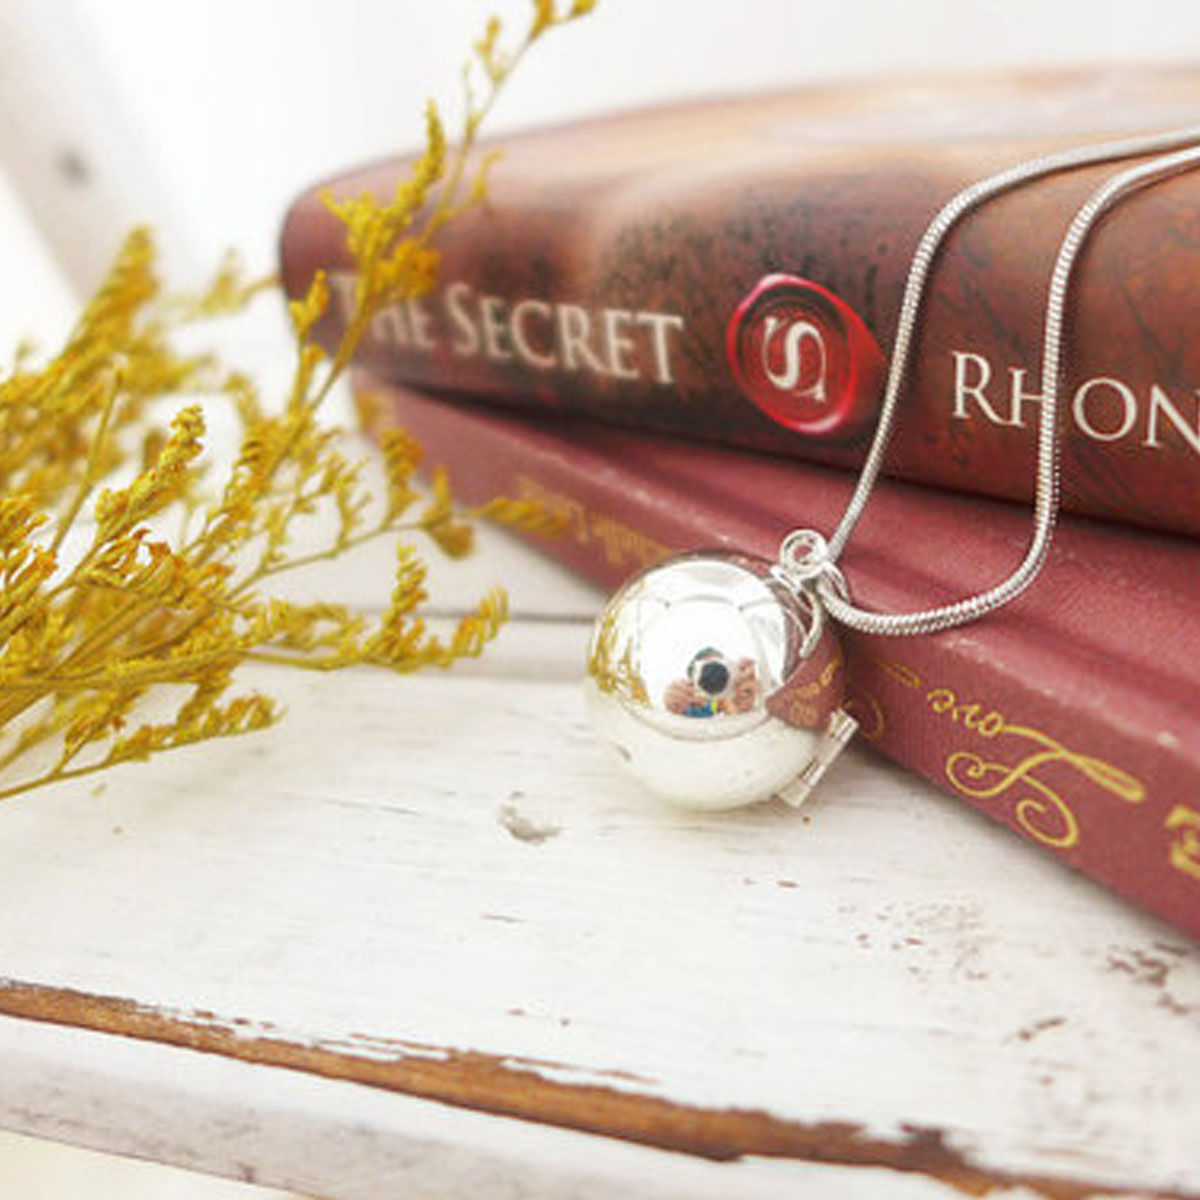 candidate com ball original wren lockets shiny by necklace notonthehighstreet secret rachel note silver product locket